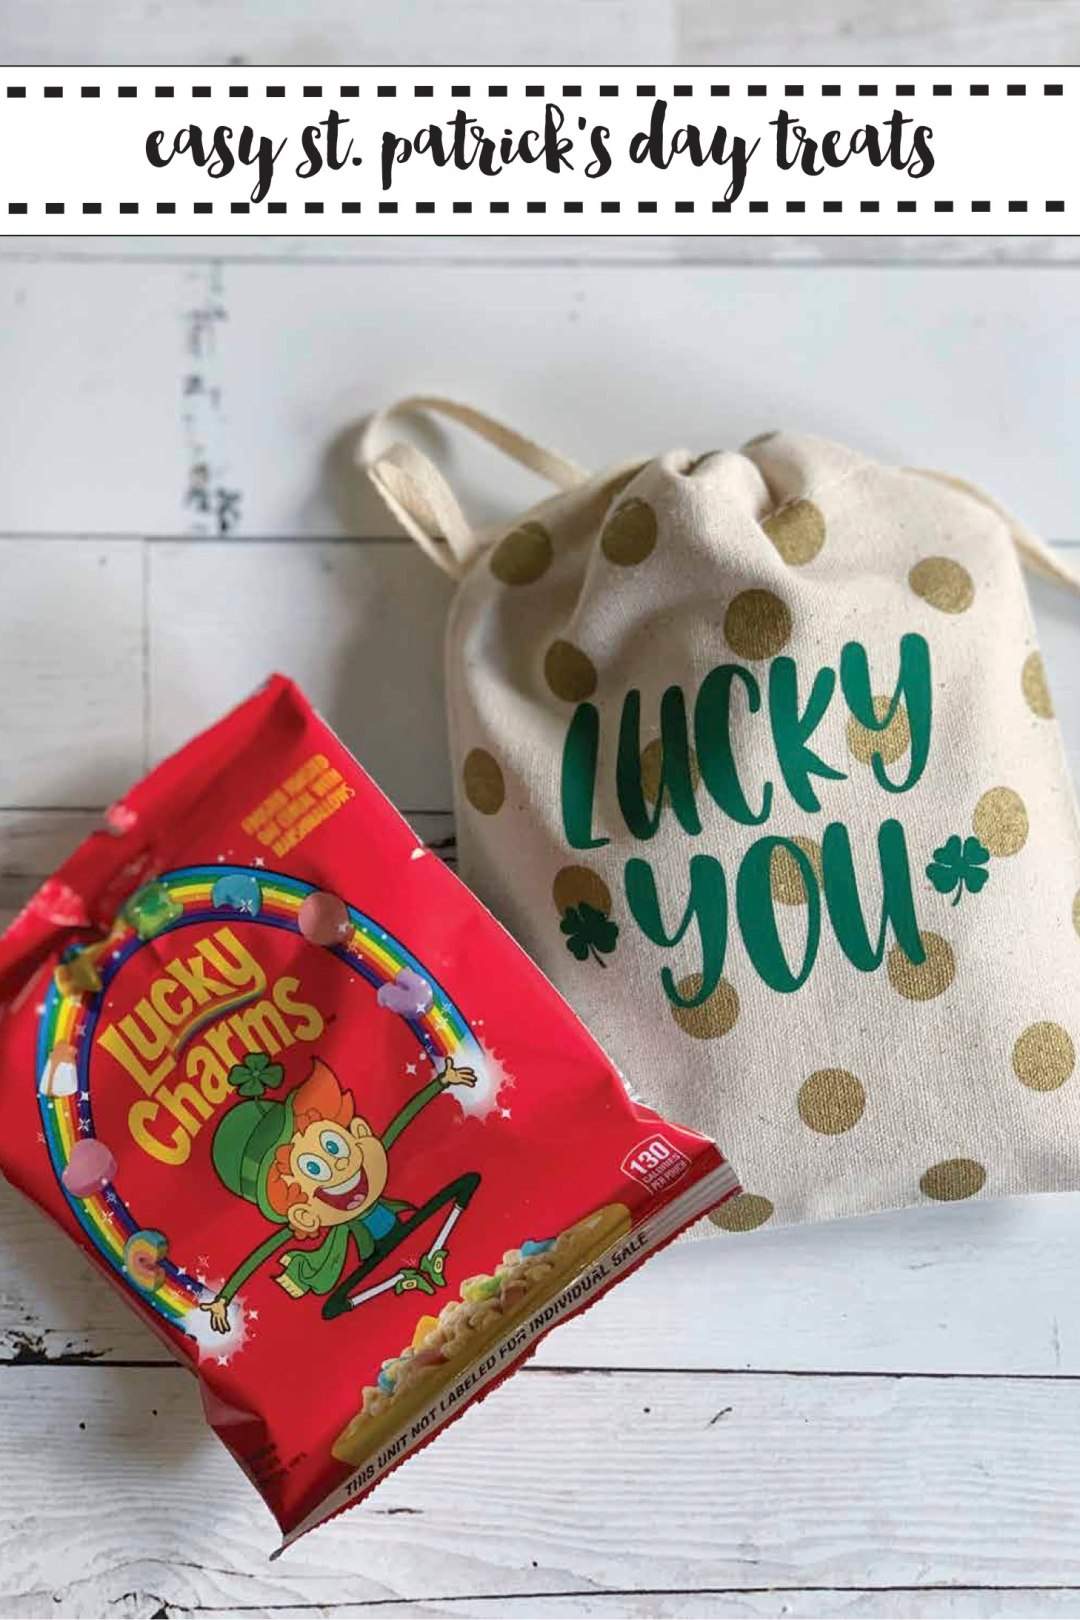 Lucky Charms Cereal Lucky You St. Patrick's Day Bag